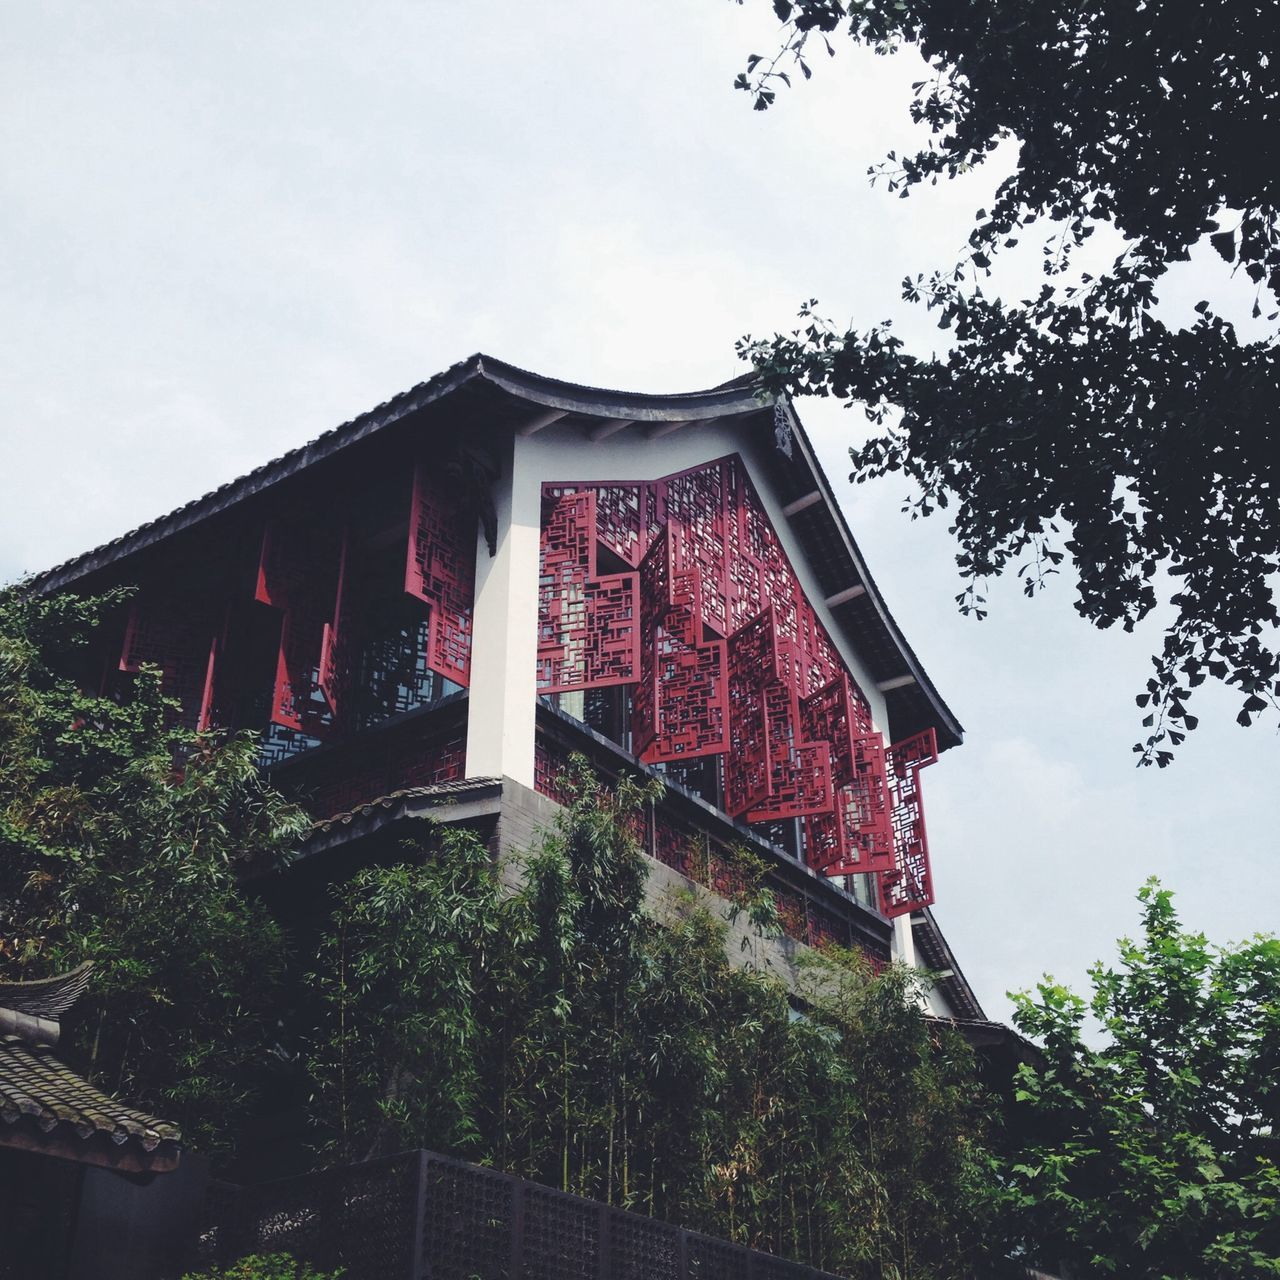 Low angle view of house